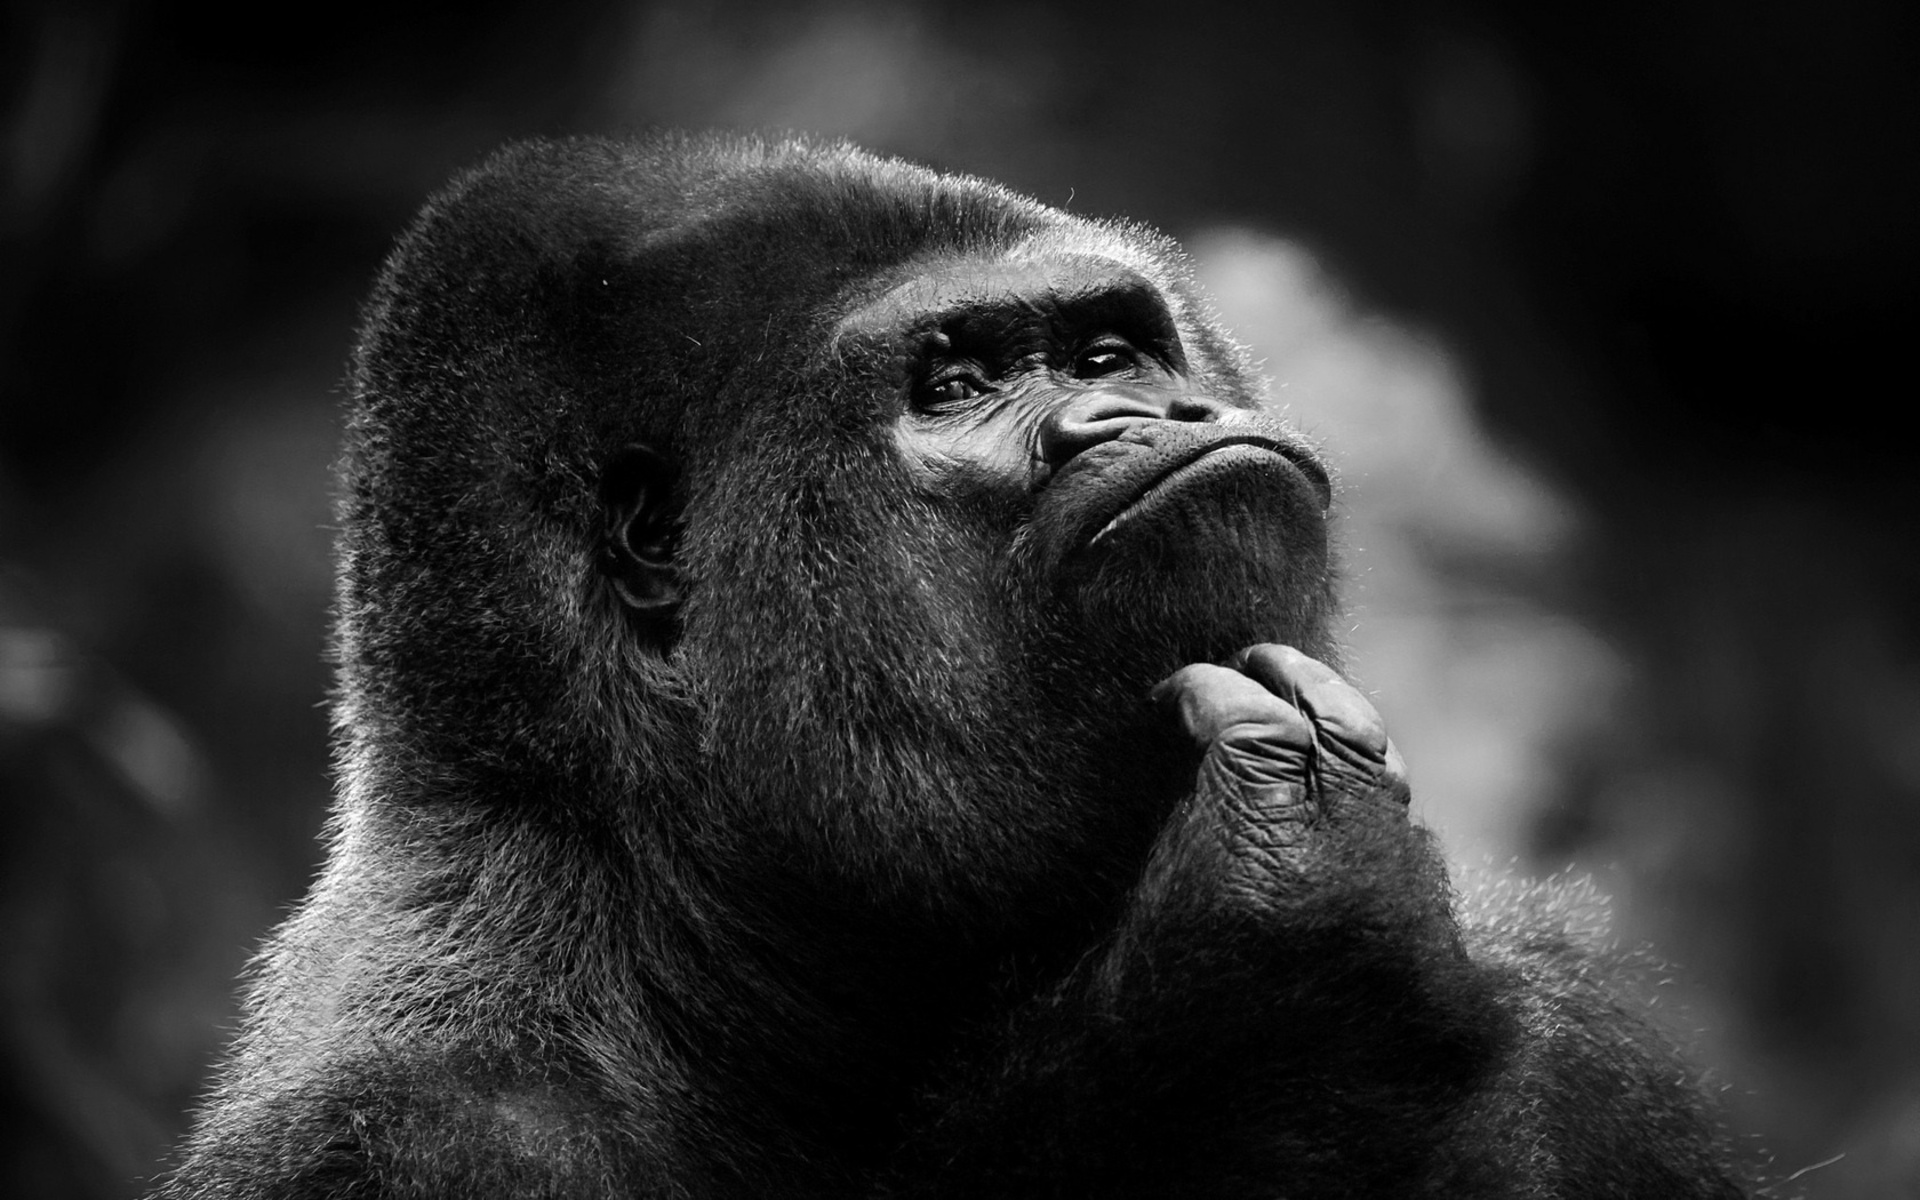 110 Gorilla HD Wallpapers Backgrounds 1920x1200